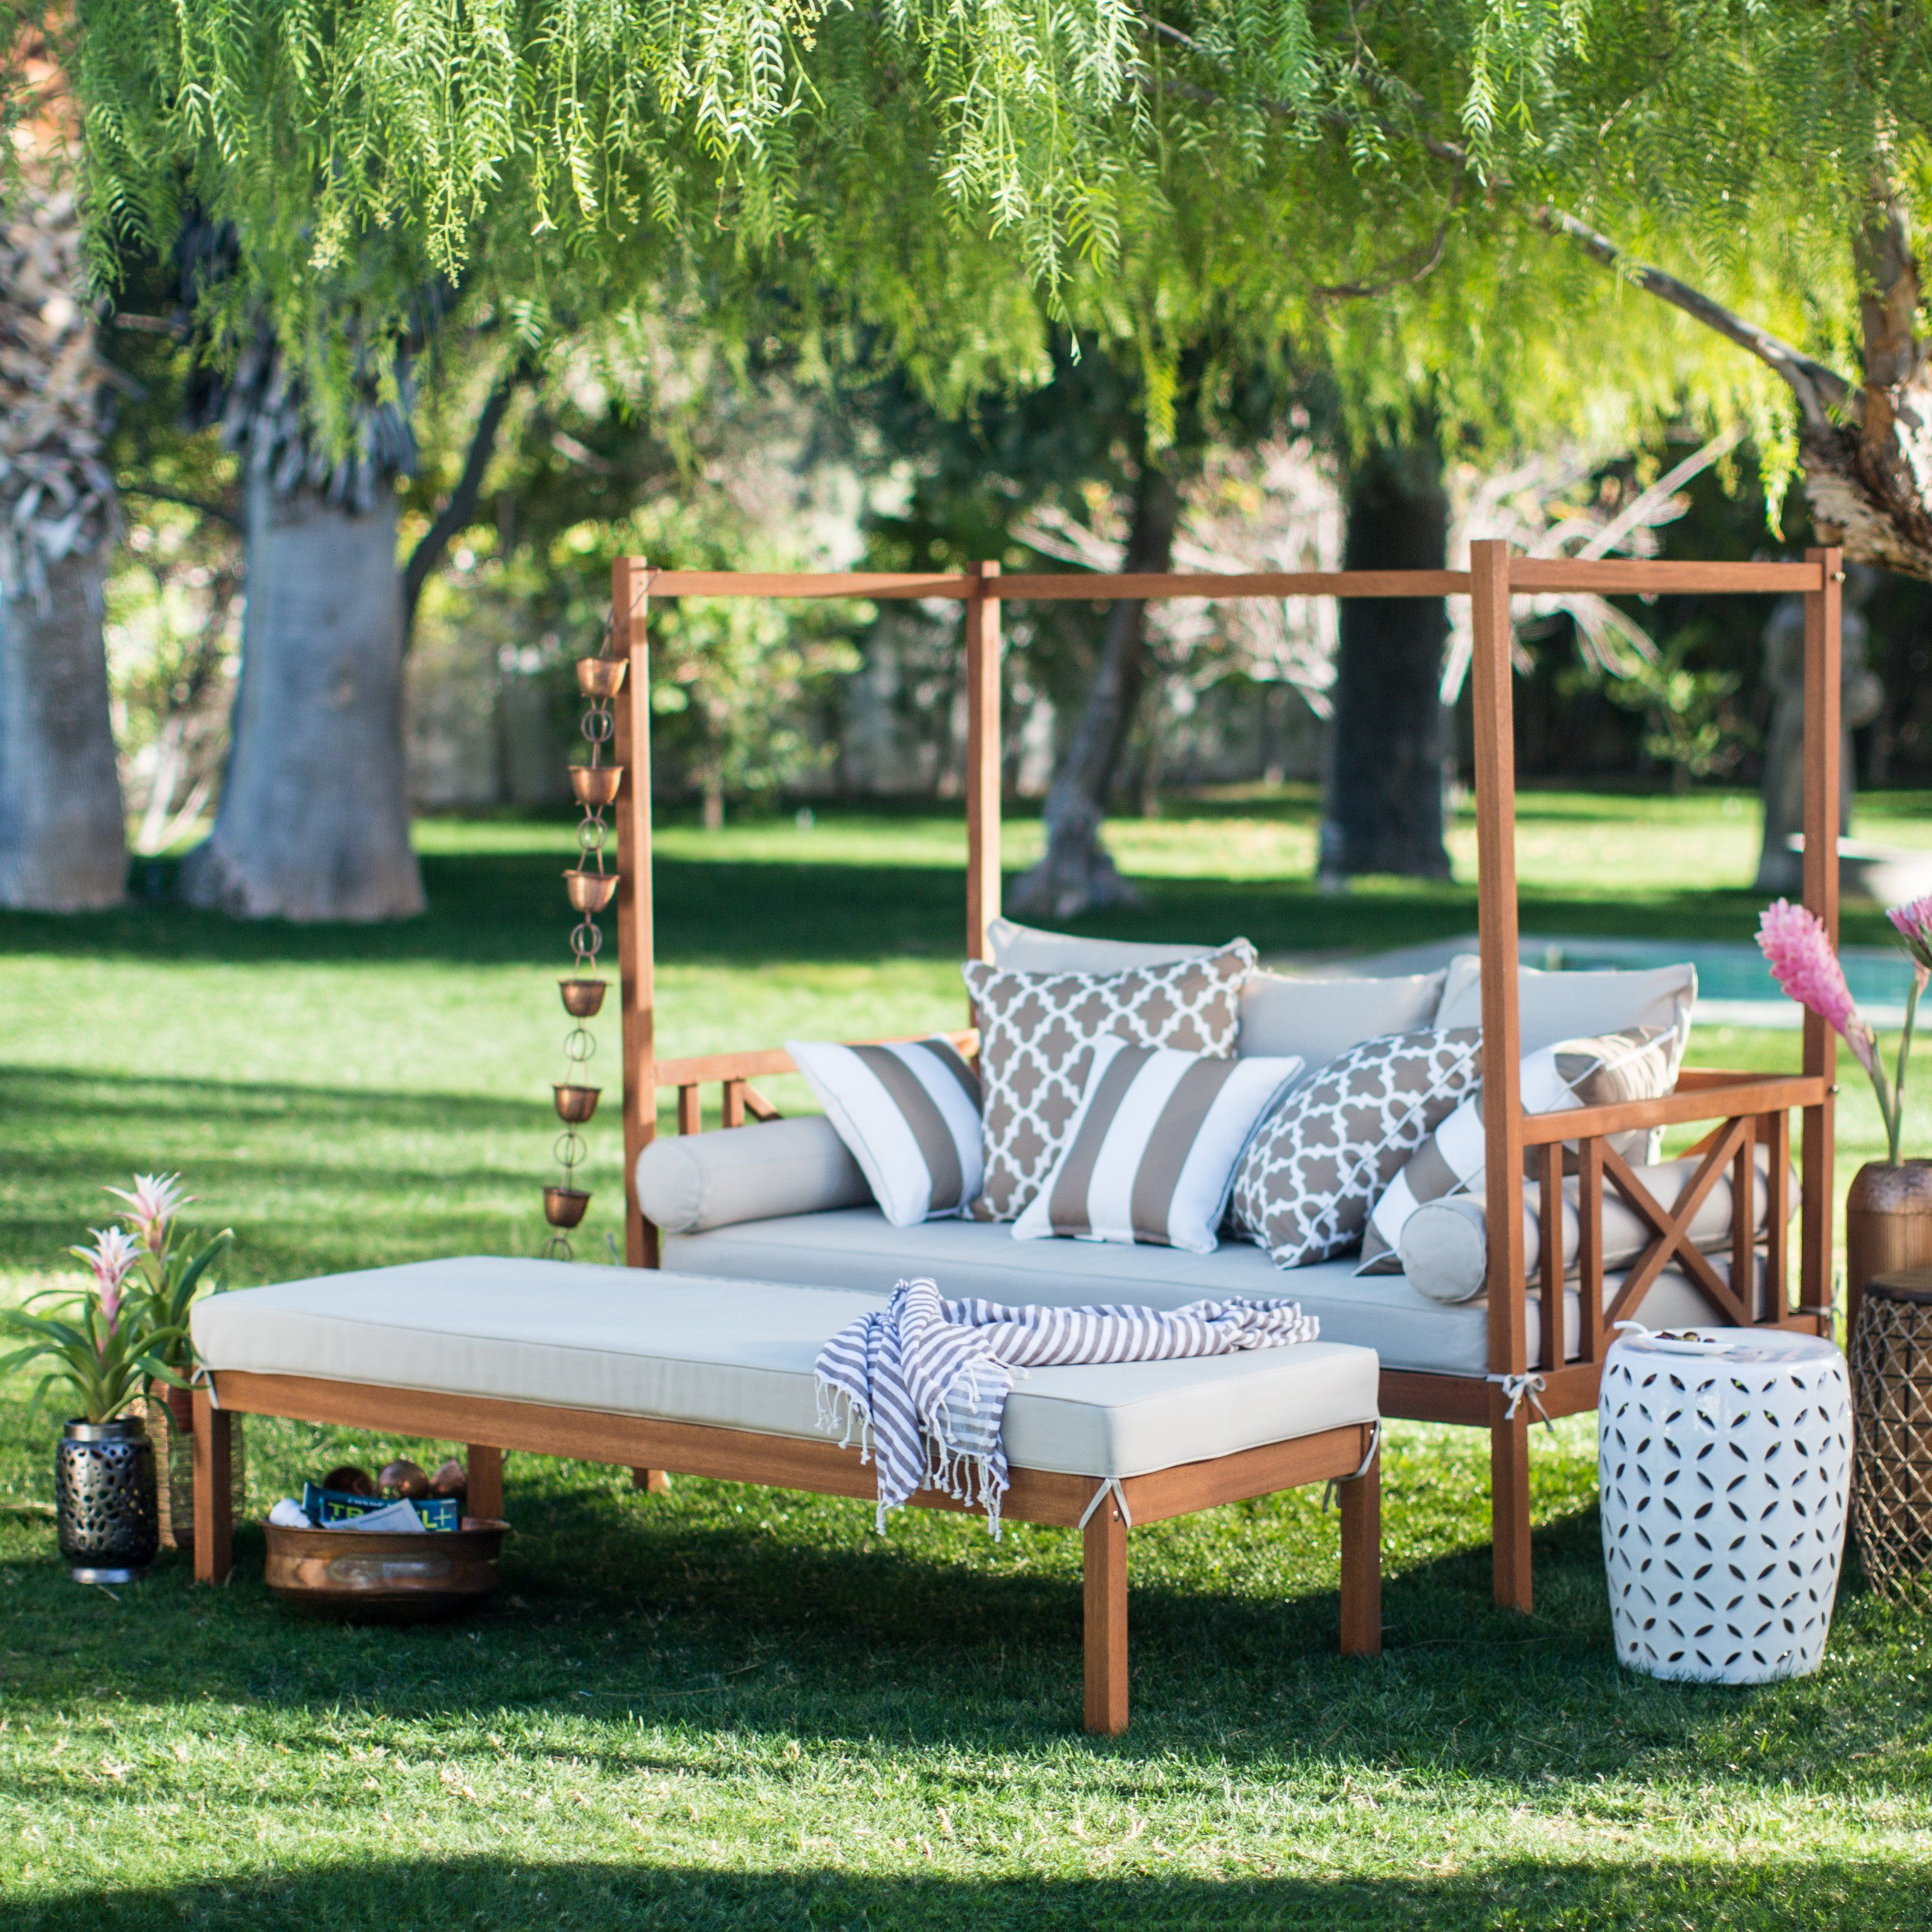 Belham Living Brighton Outdoor Daybed and Ottoman ... on Belham Living Brighton Outdoor Daybed id=37115